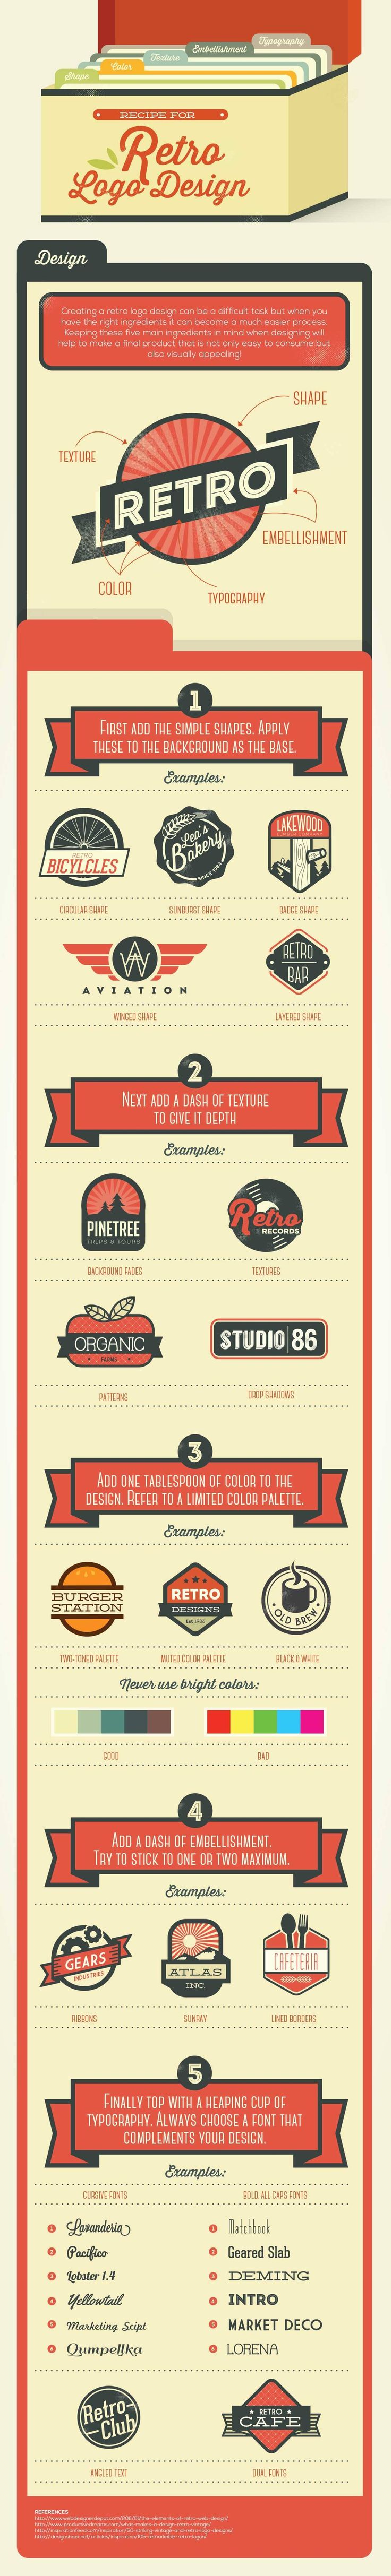 Recipe for retro logo design. (More design inspiration at )